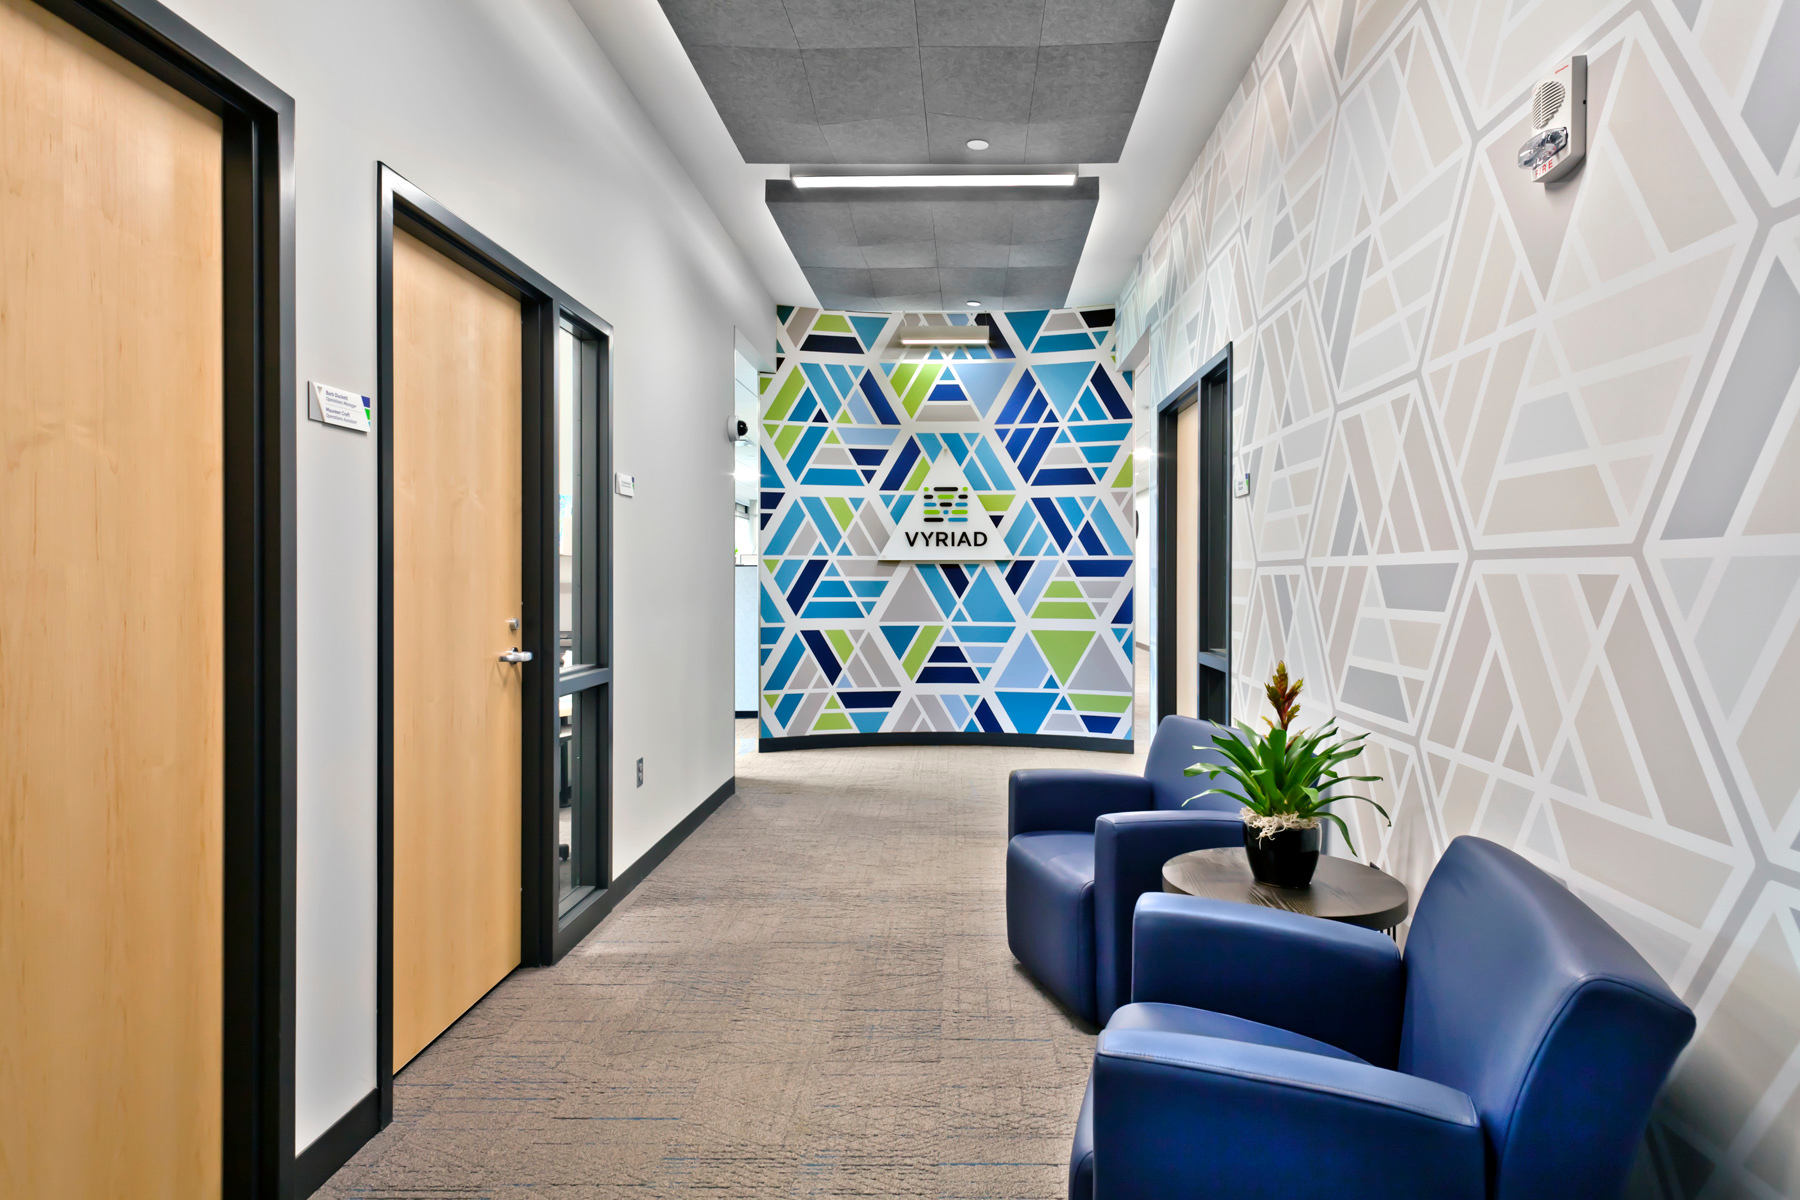 A spacious hallway can be found outside private offices at the Vyriad office in Rochester, Minnesota.